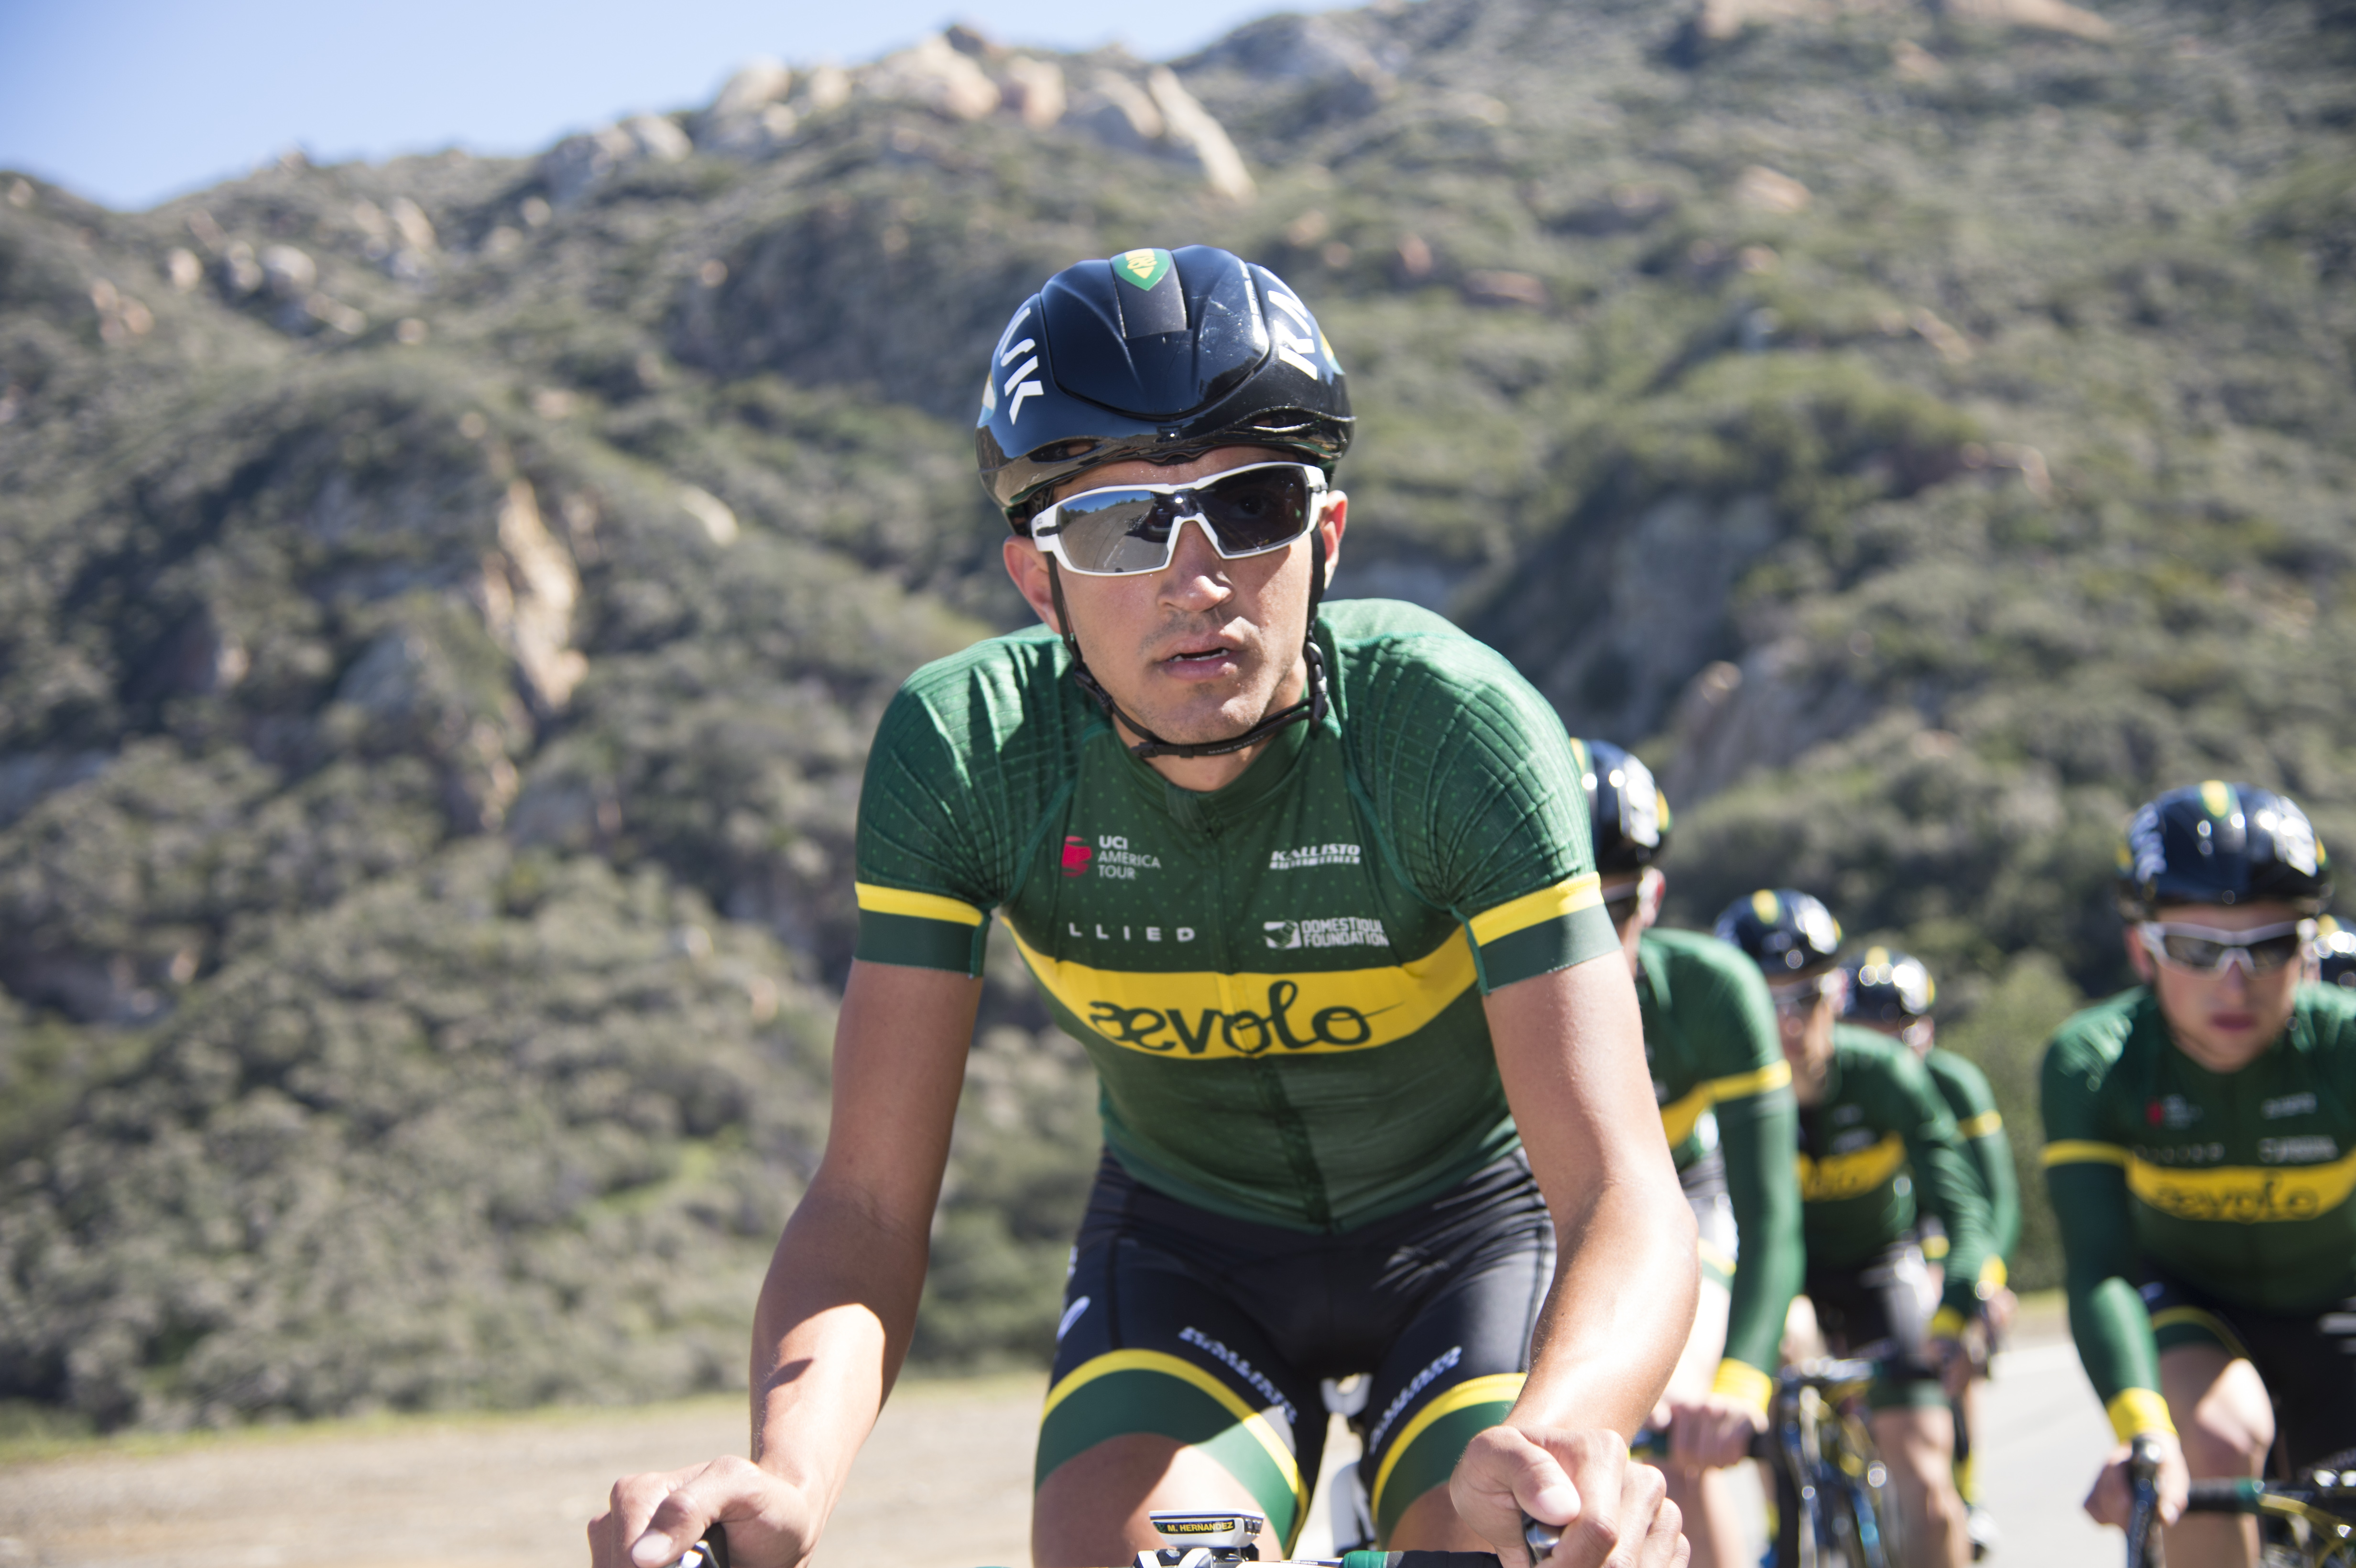 99d21b387 Meet a contender  Michael Hernandez – Aevolo Cycling. The Tour of the Gila  ...